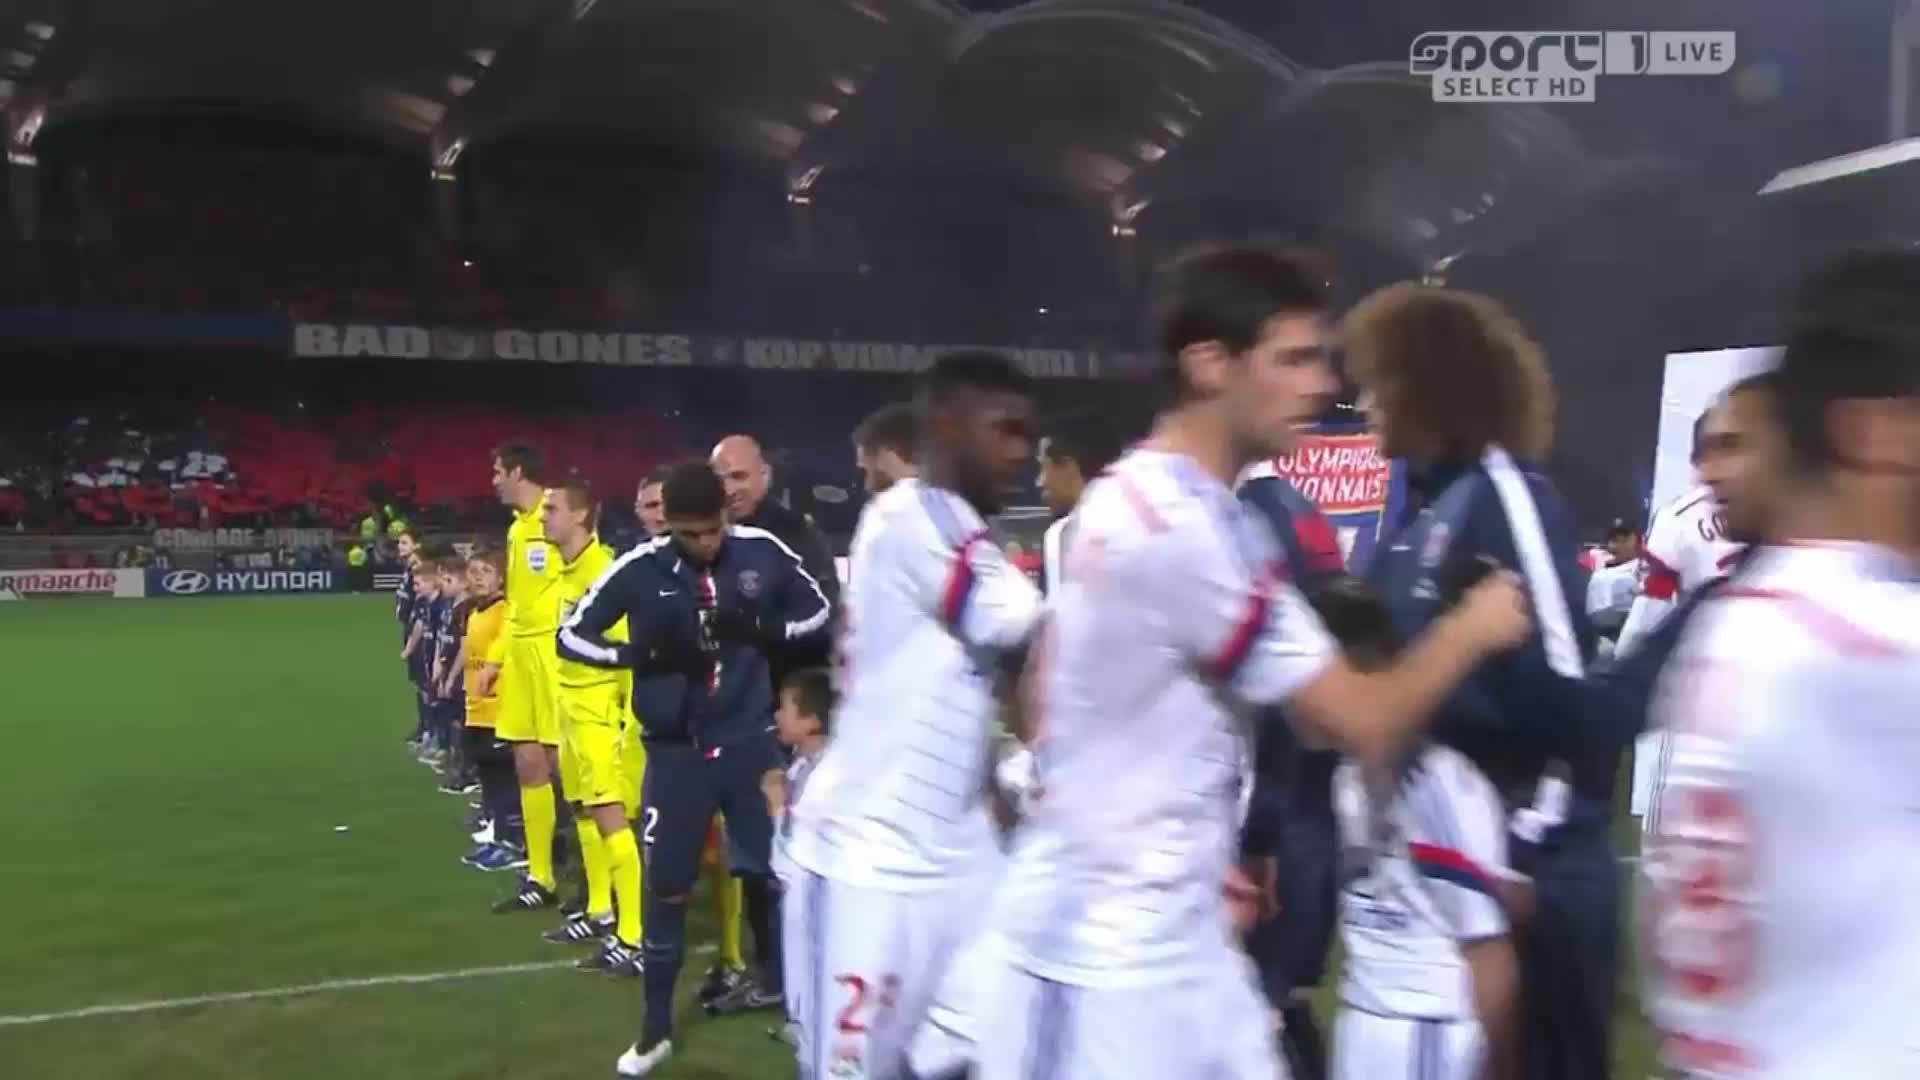 MadeMeSmile, footbaww, Brazillian footballer Thiago Silva giving his jacket to a freezing kid (reddit) GIFs